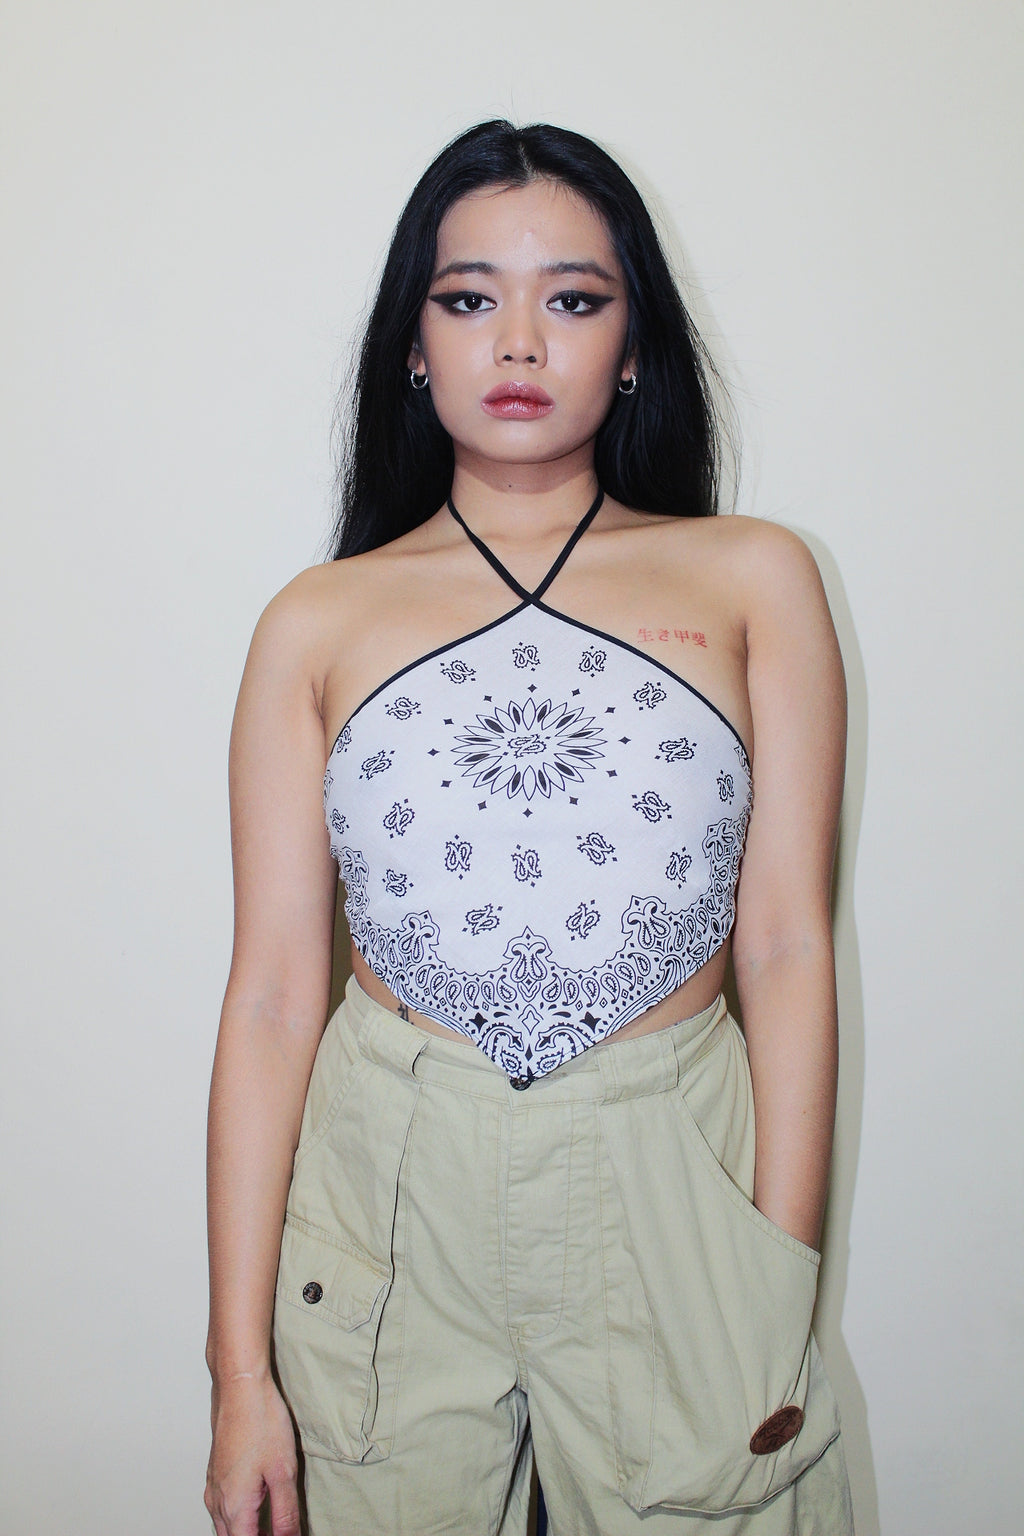 RWRK Bandana Halter Top - White and Black